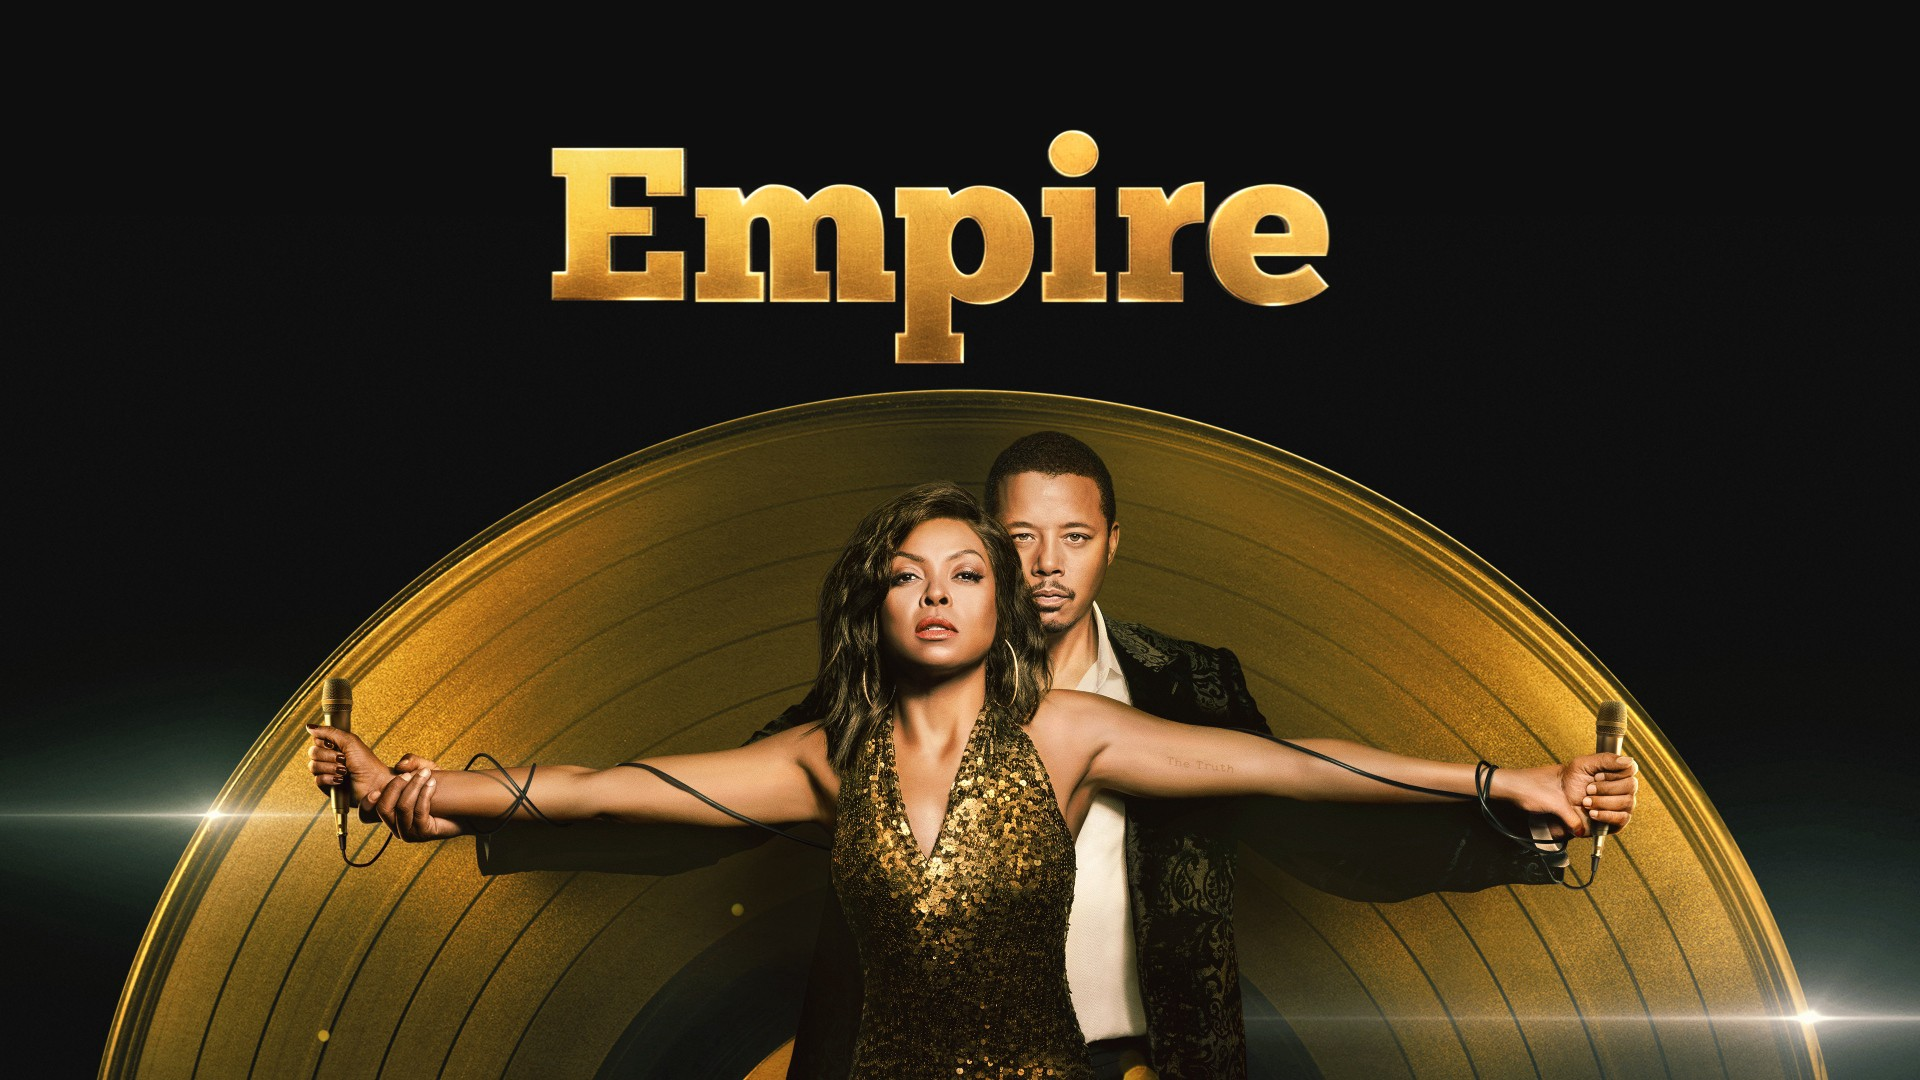 Empire Season 6 Episode 6 Heart Of Stone Review